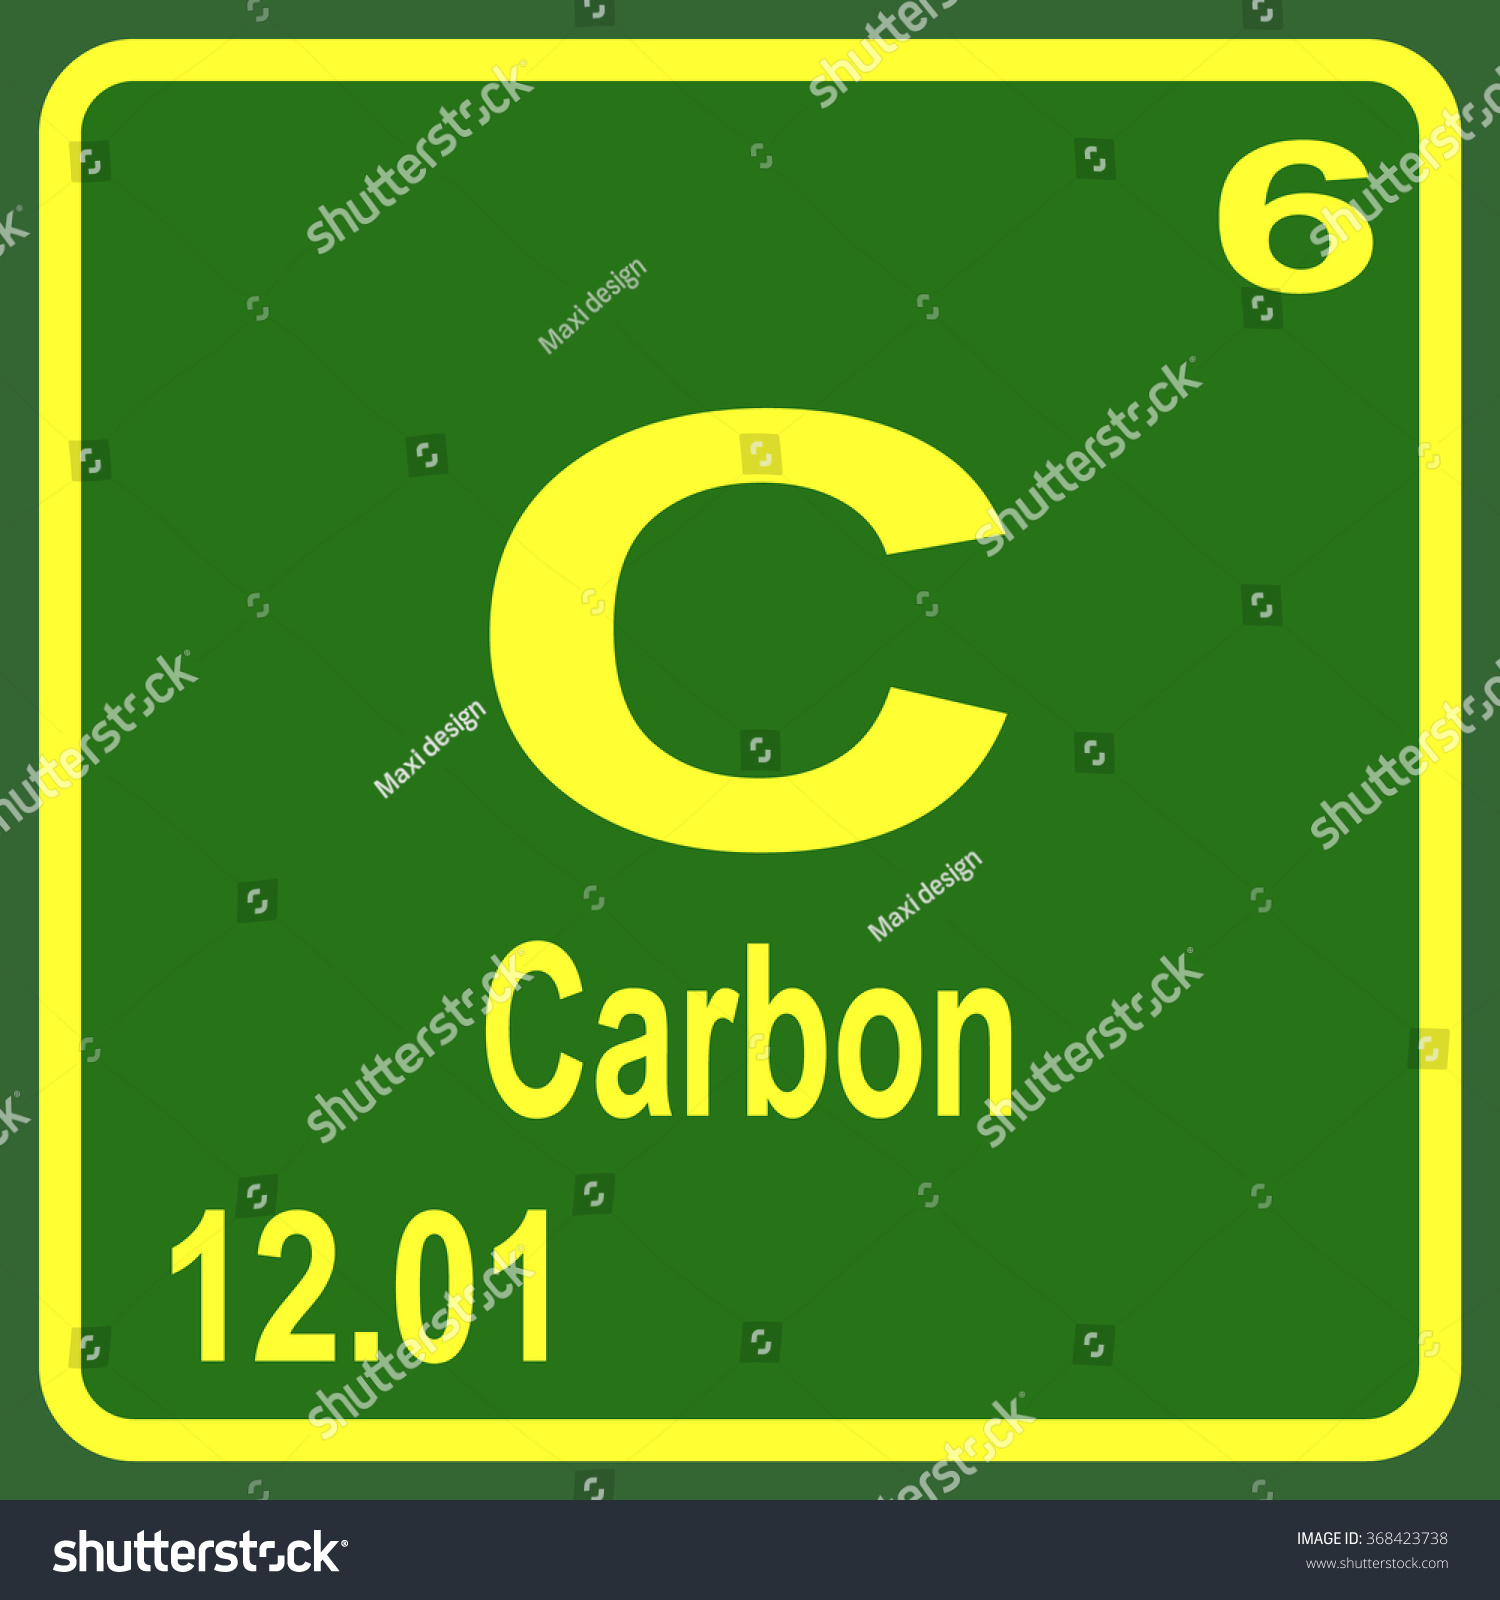 Periodic table elements carbon stock vector 368423738 shutterstock urtaz Gallery